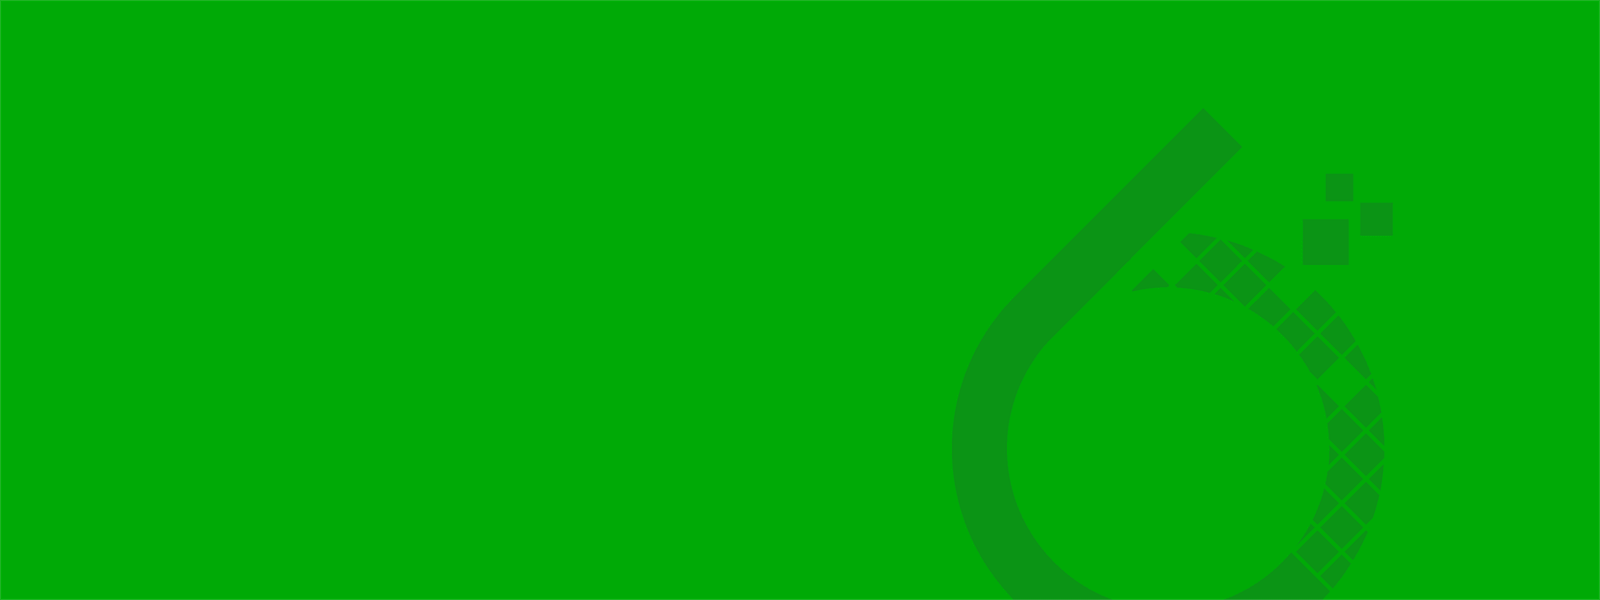 Website Headers_6t30 - Green 2